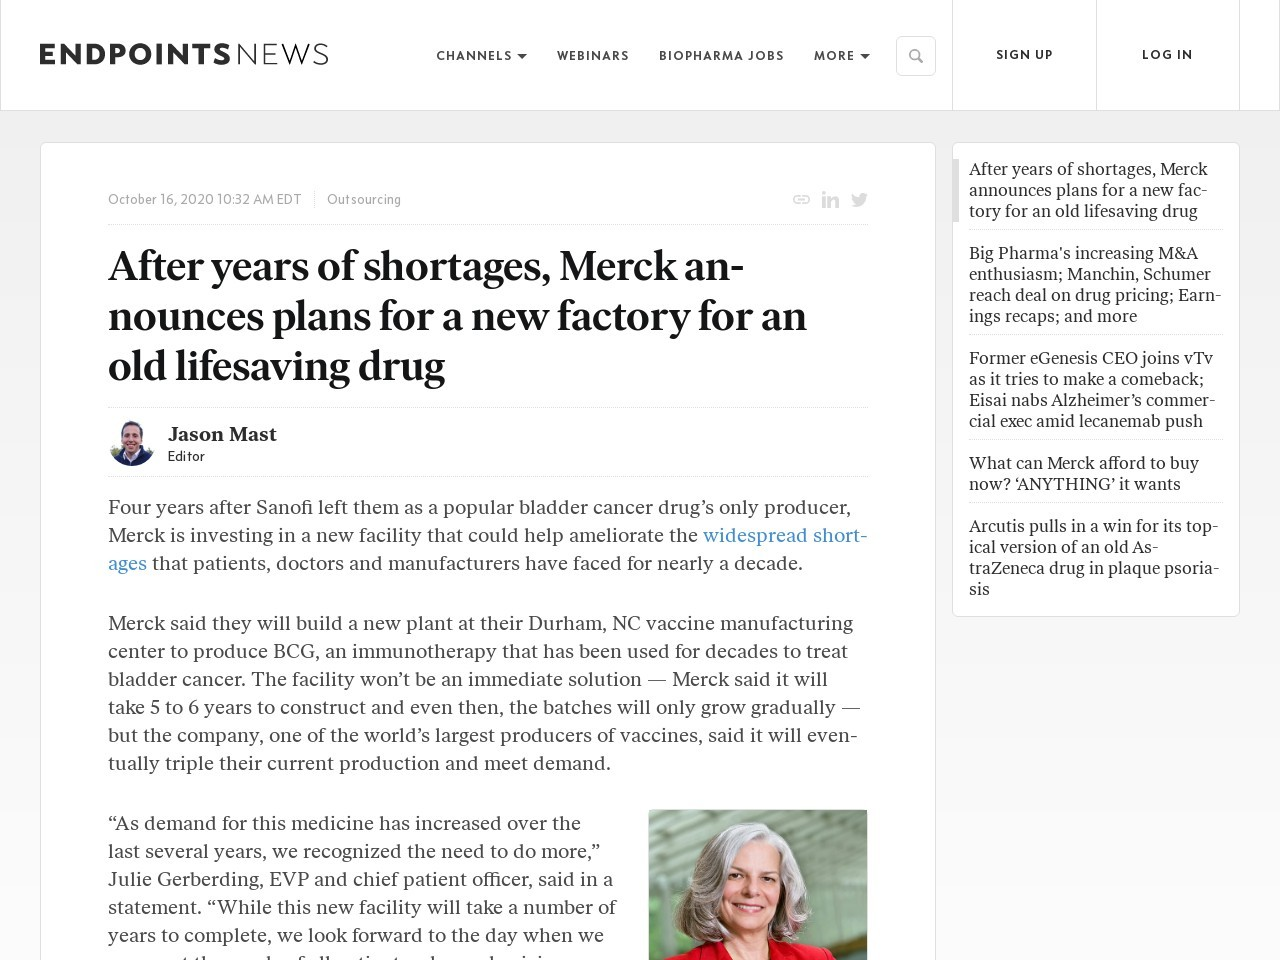 After years of shortages, Merck announces plans for a new factory for an old lifesaving drug